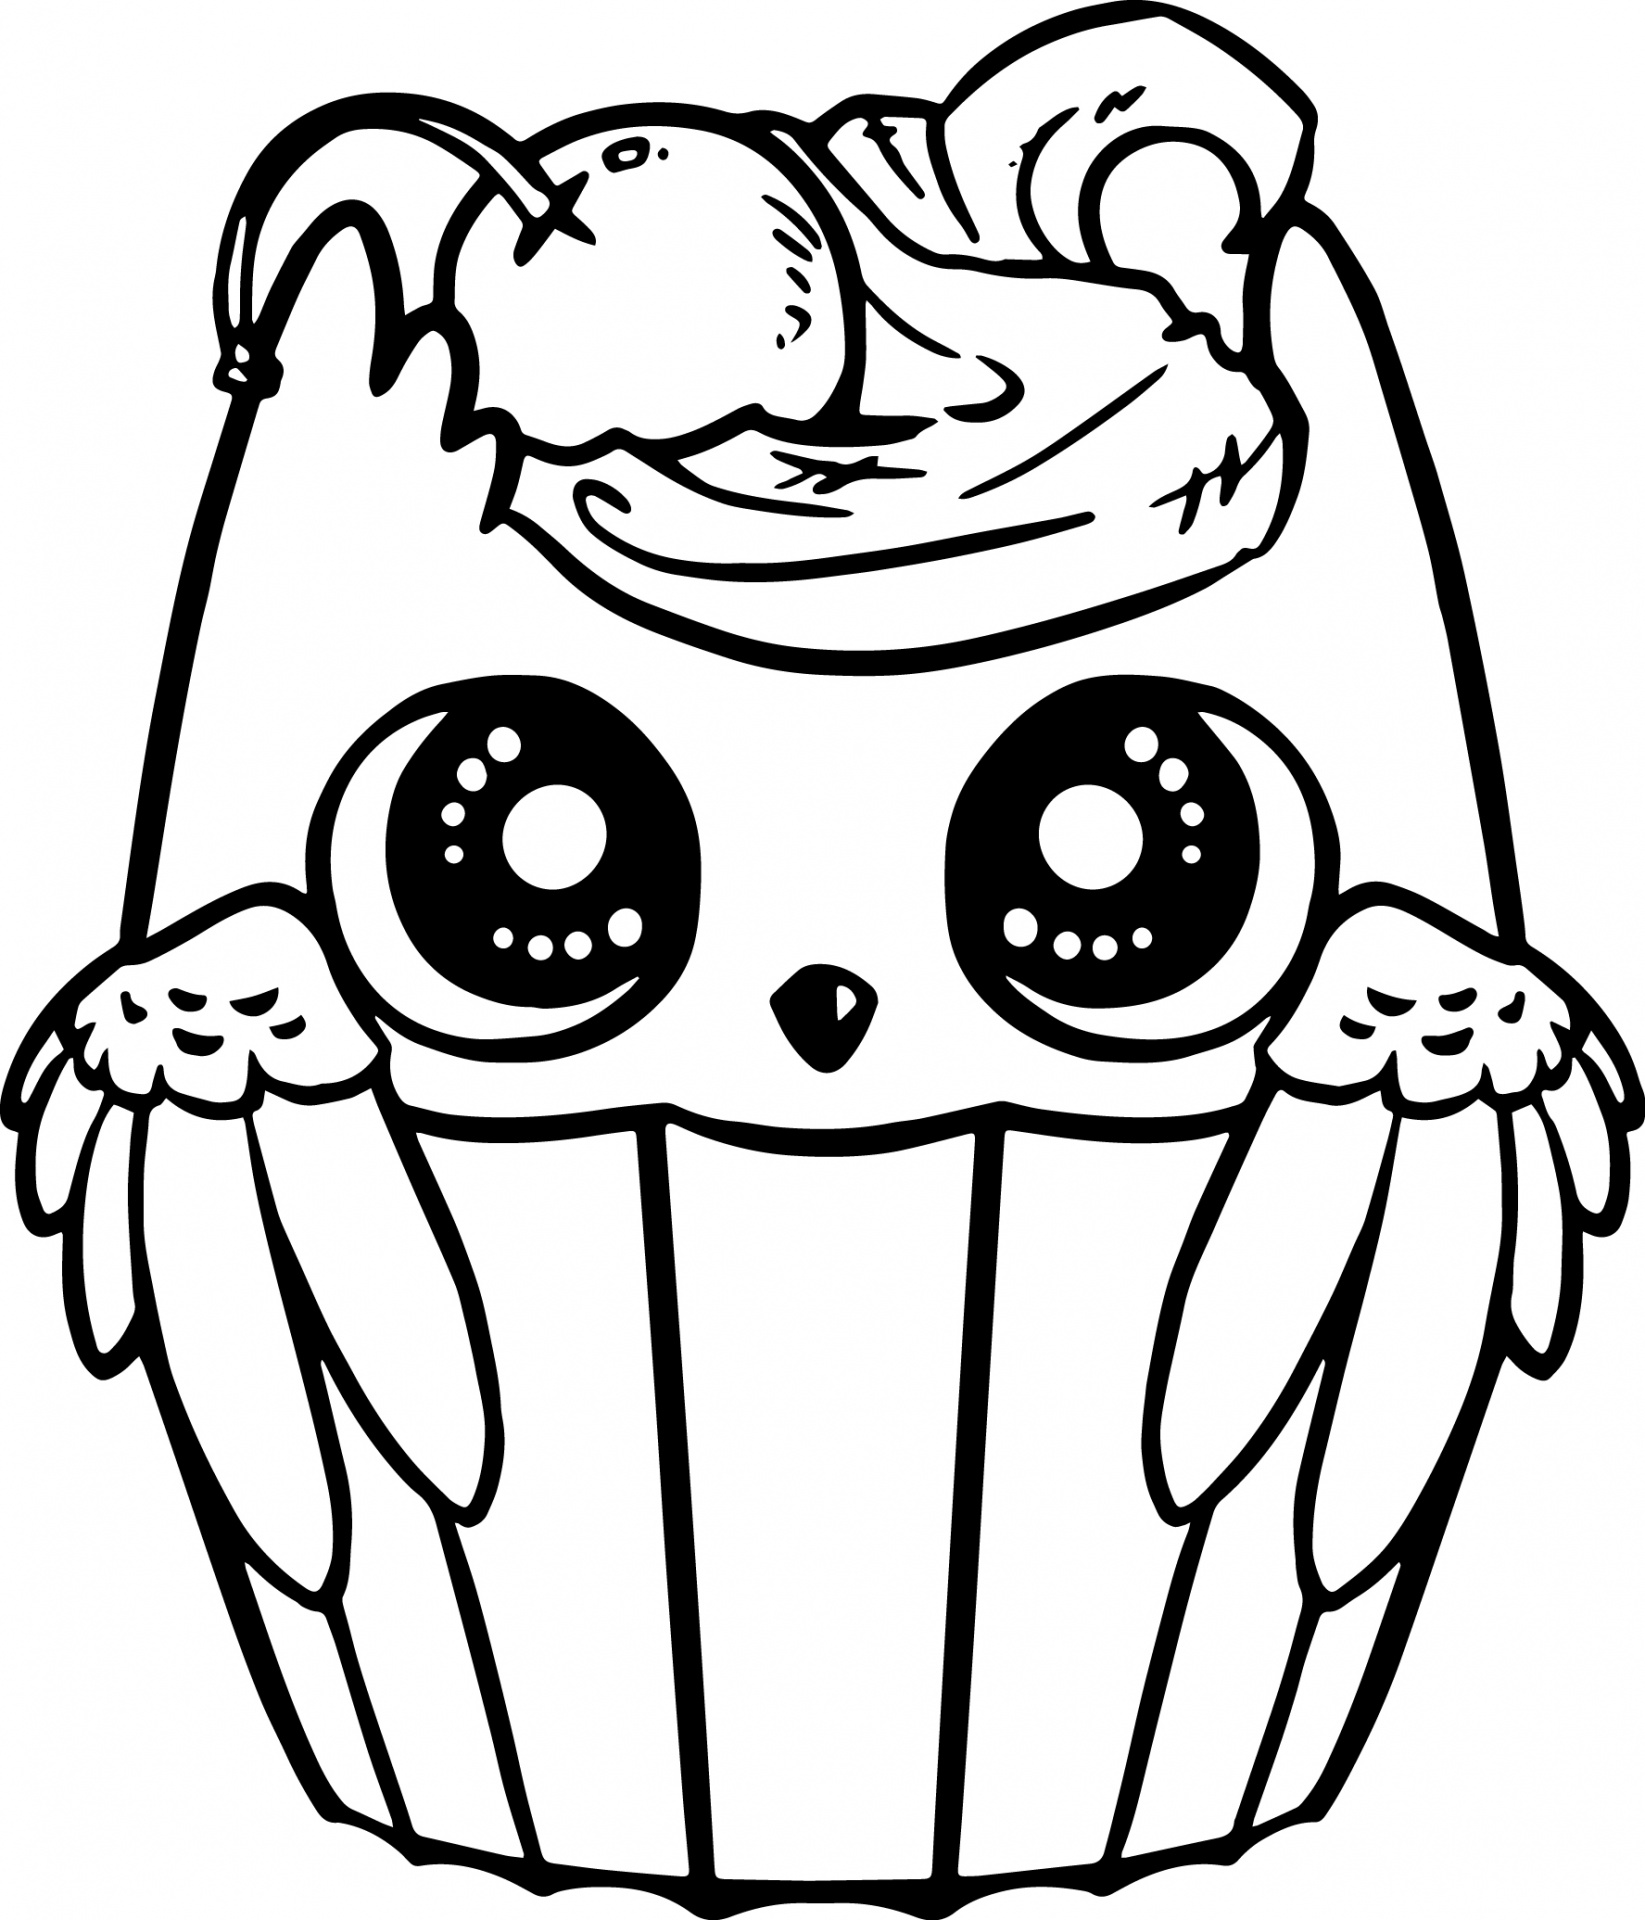 1645x1920 Adult Cupcake Drawing Cupcake Drawing Cute. Cupcake Drawing